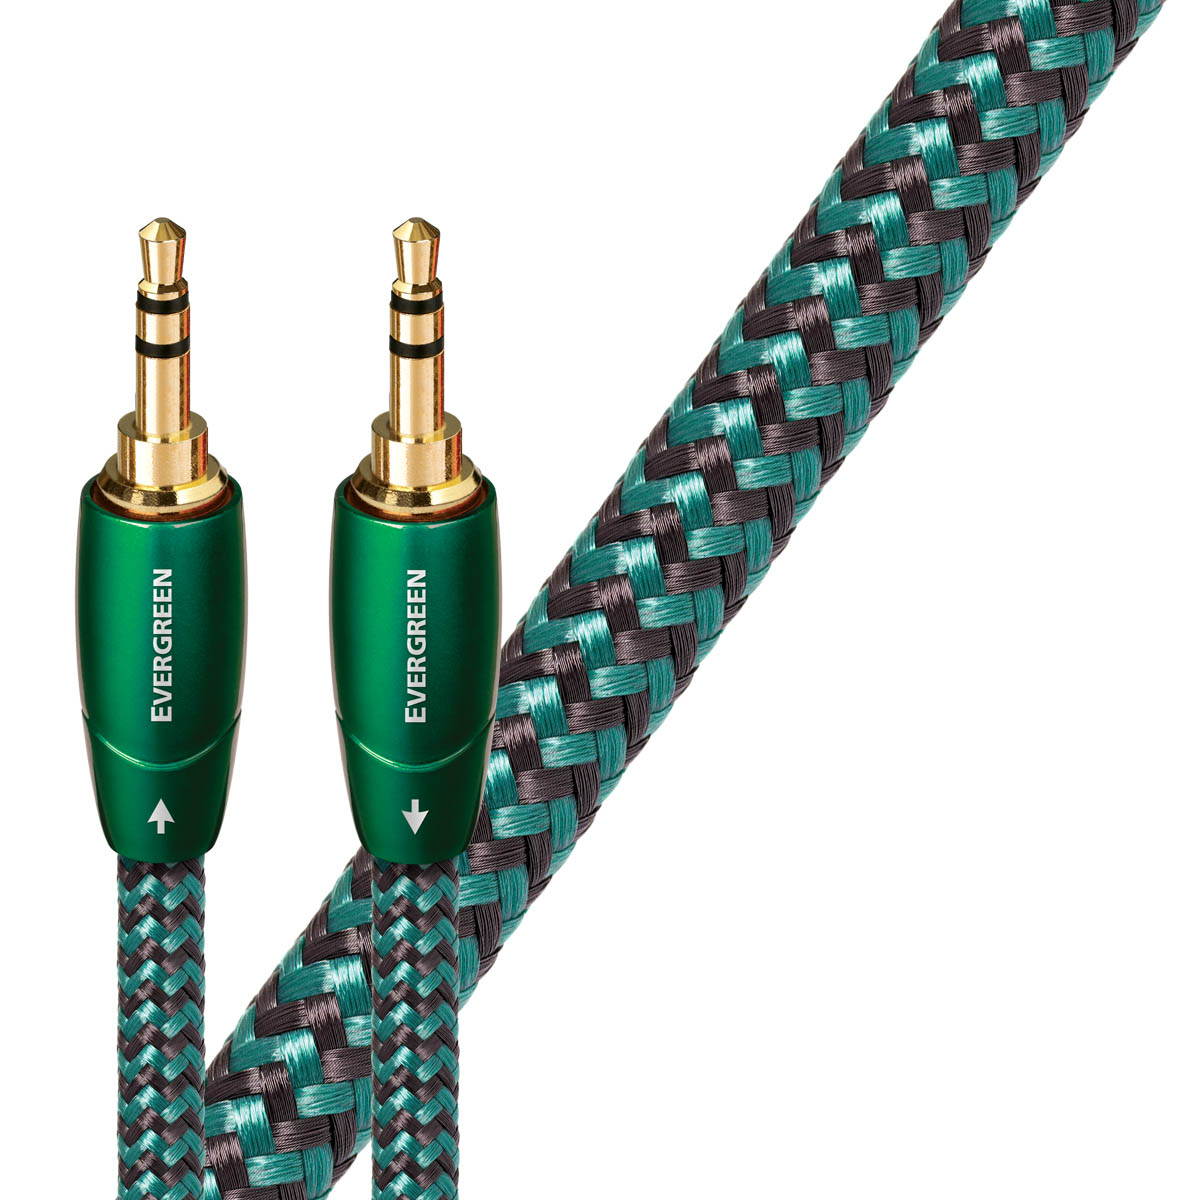 AudioQuest Evergreen 3,5mm Mini Klinke M - M Kabel 20 Meter